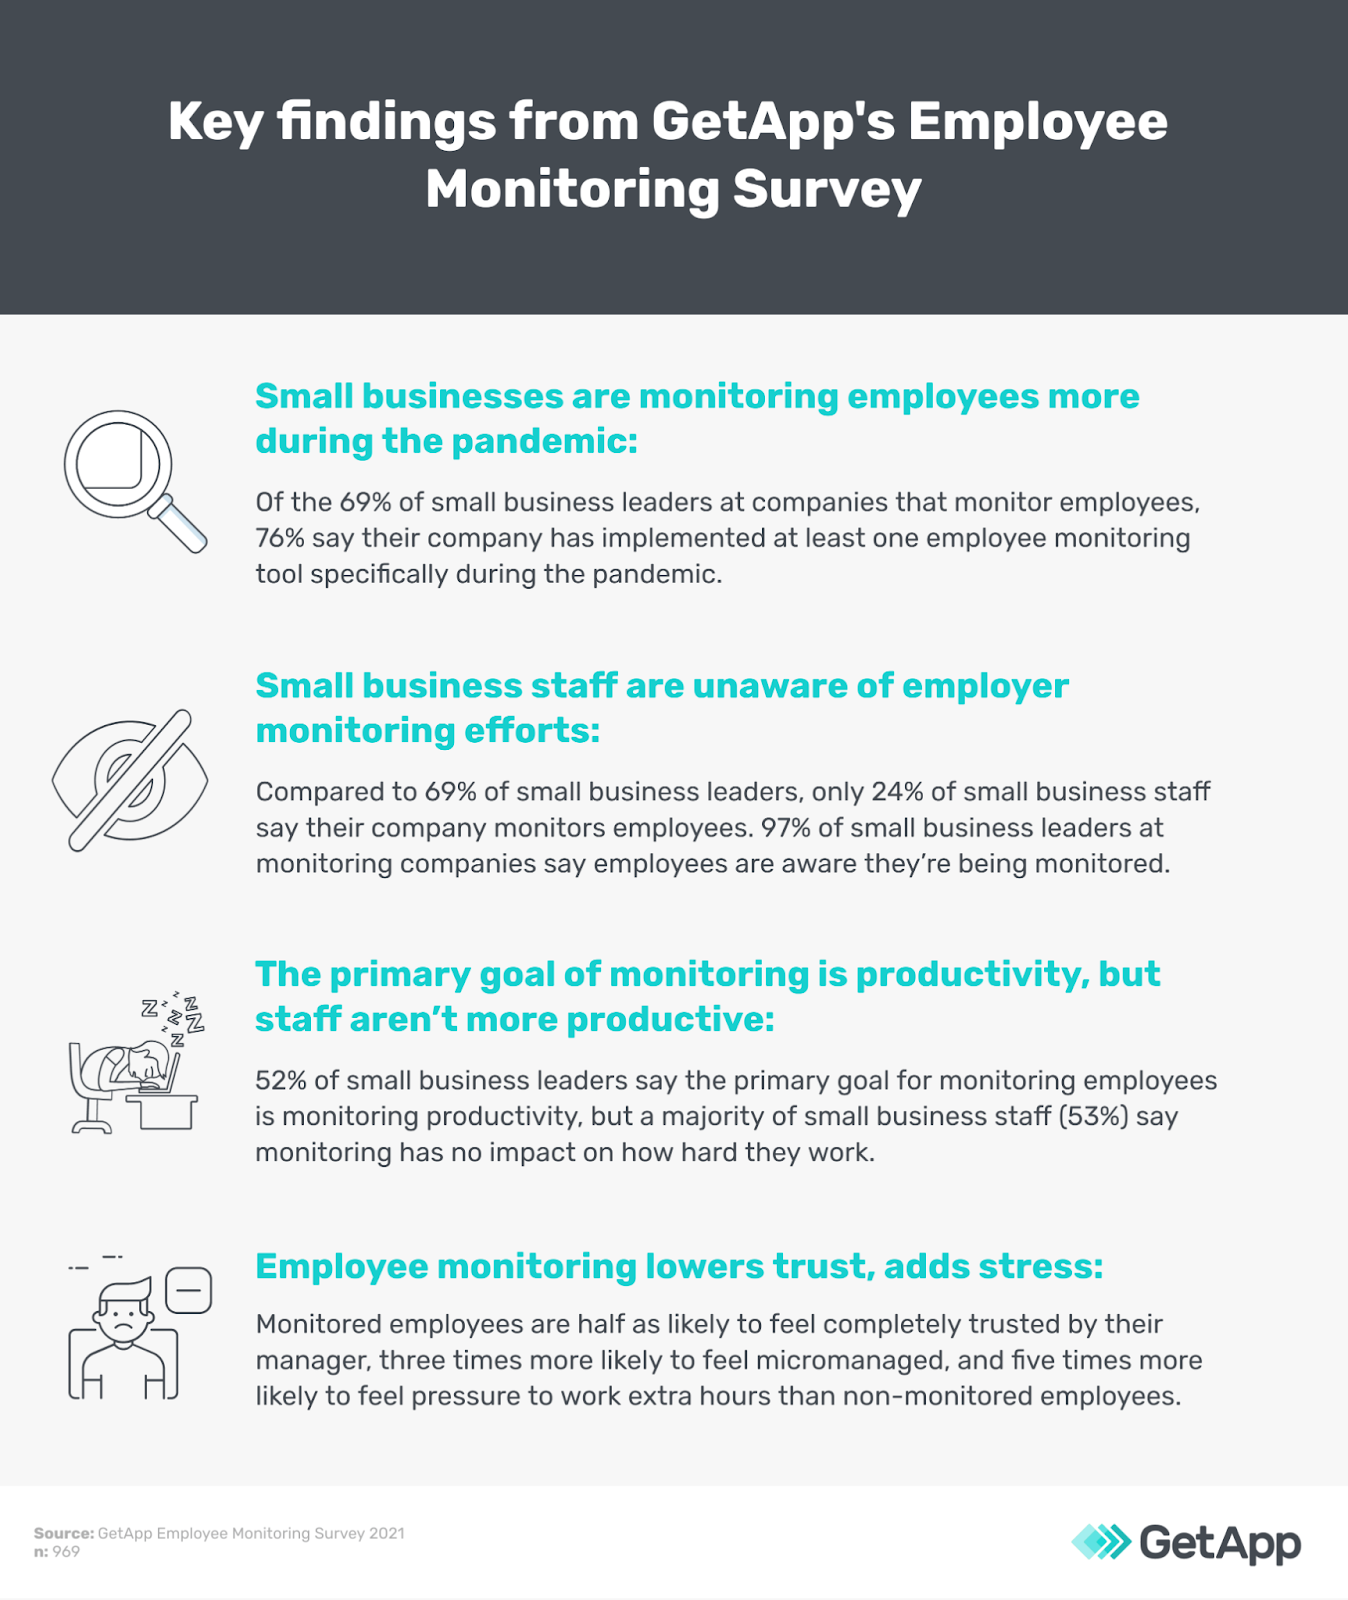 Key findings from GetApp's employee monitoring survey